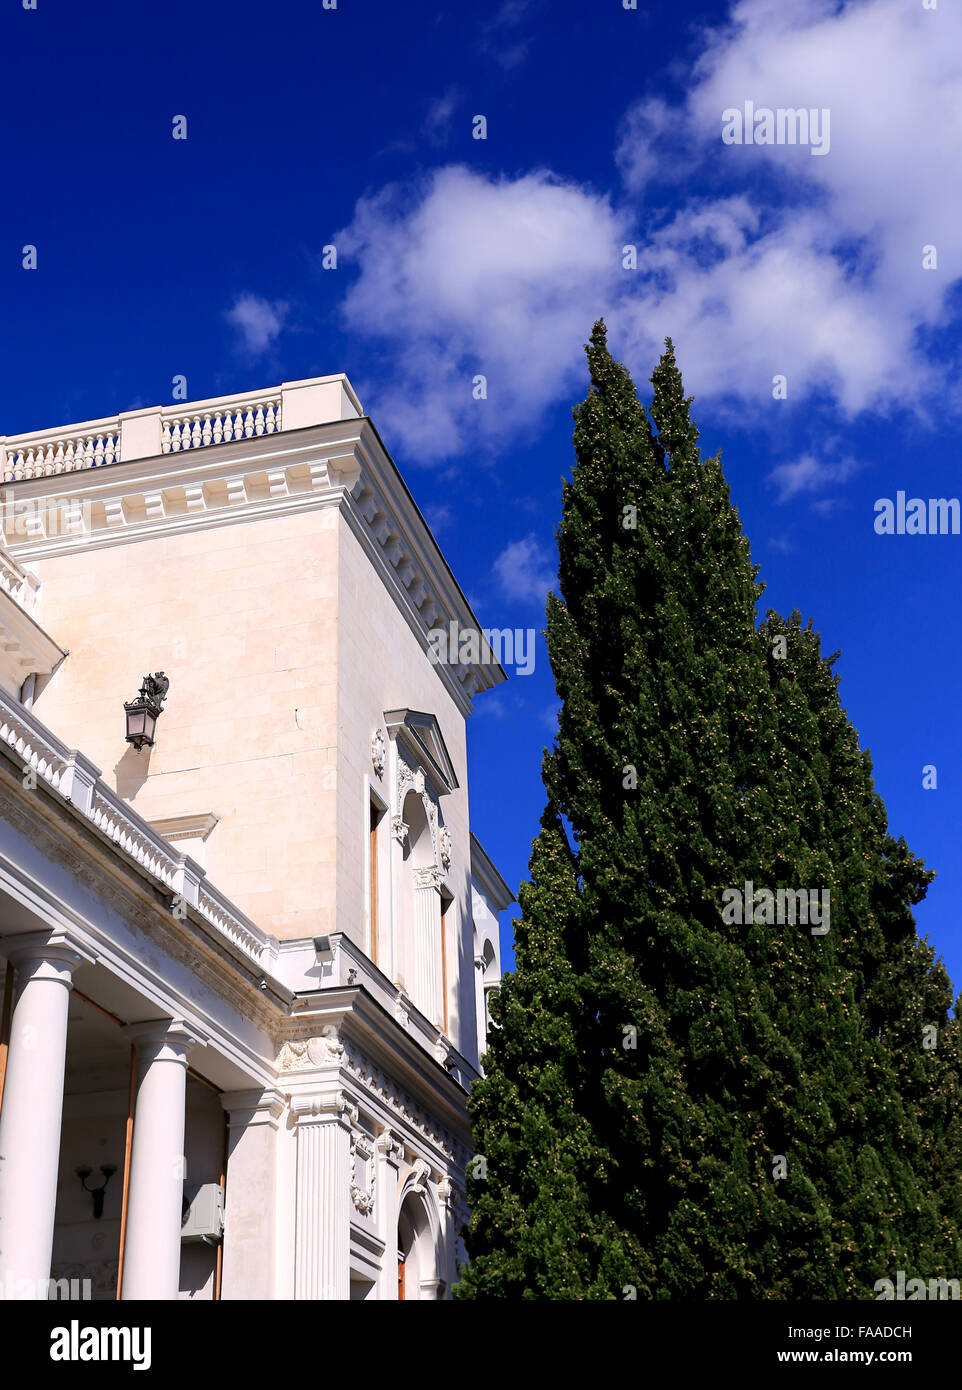 Wall of white classical building with marble columns - Stock Image